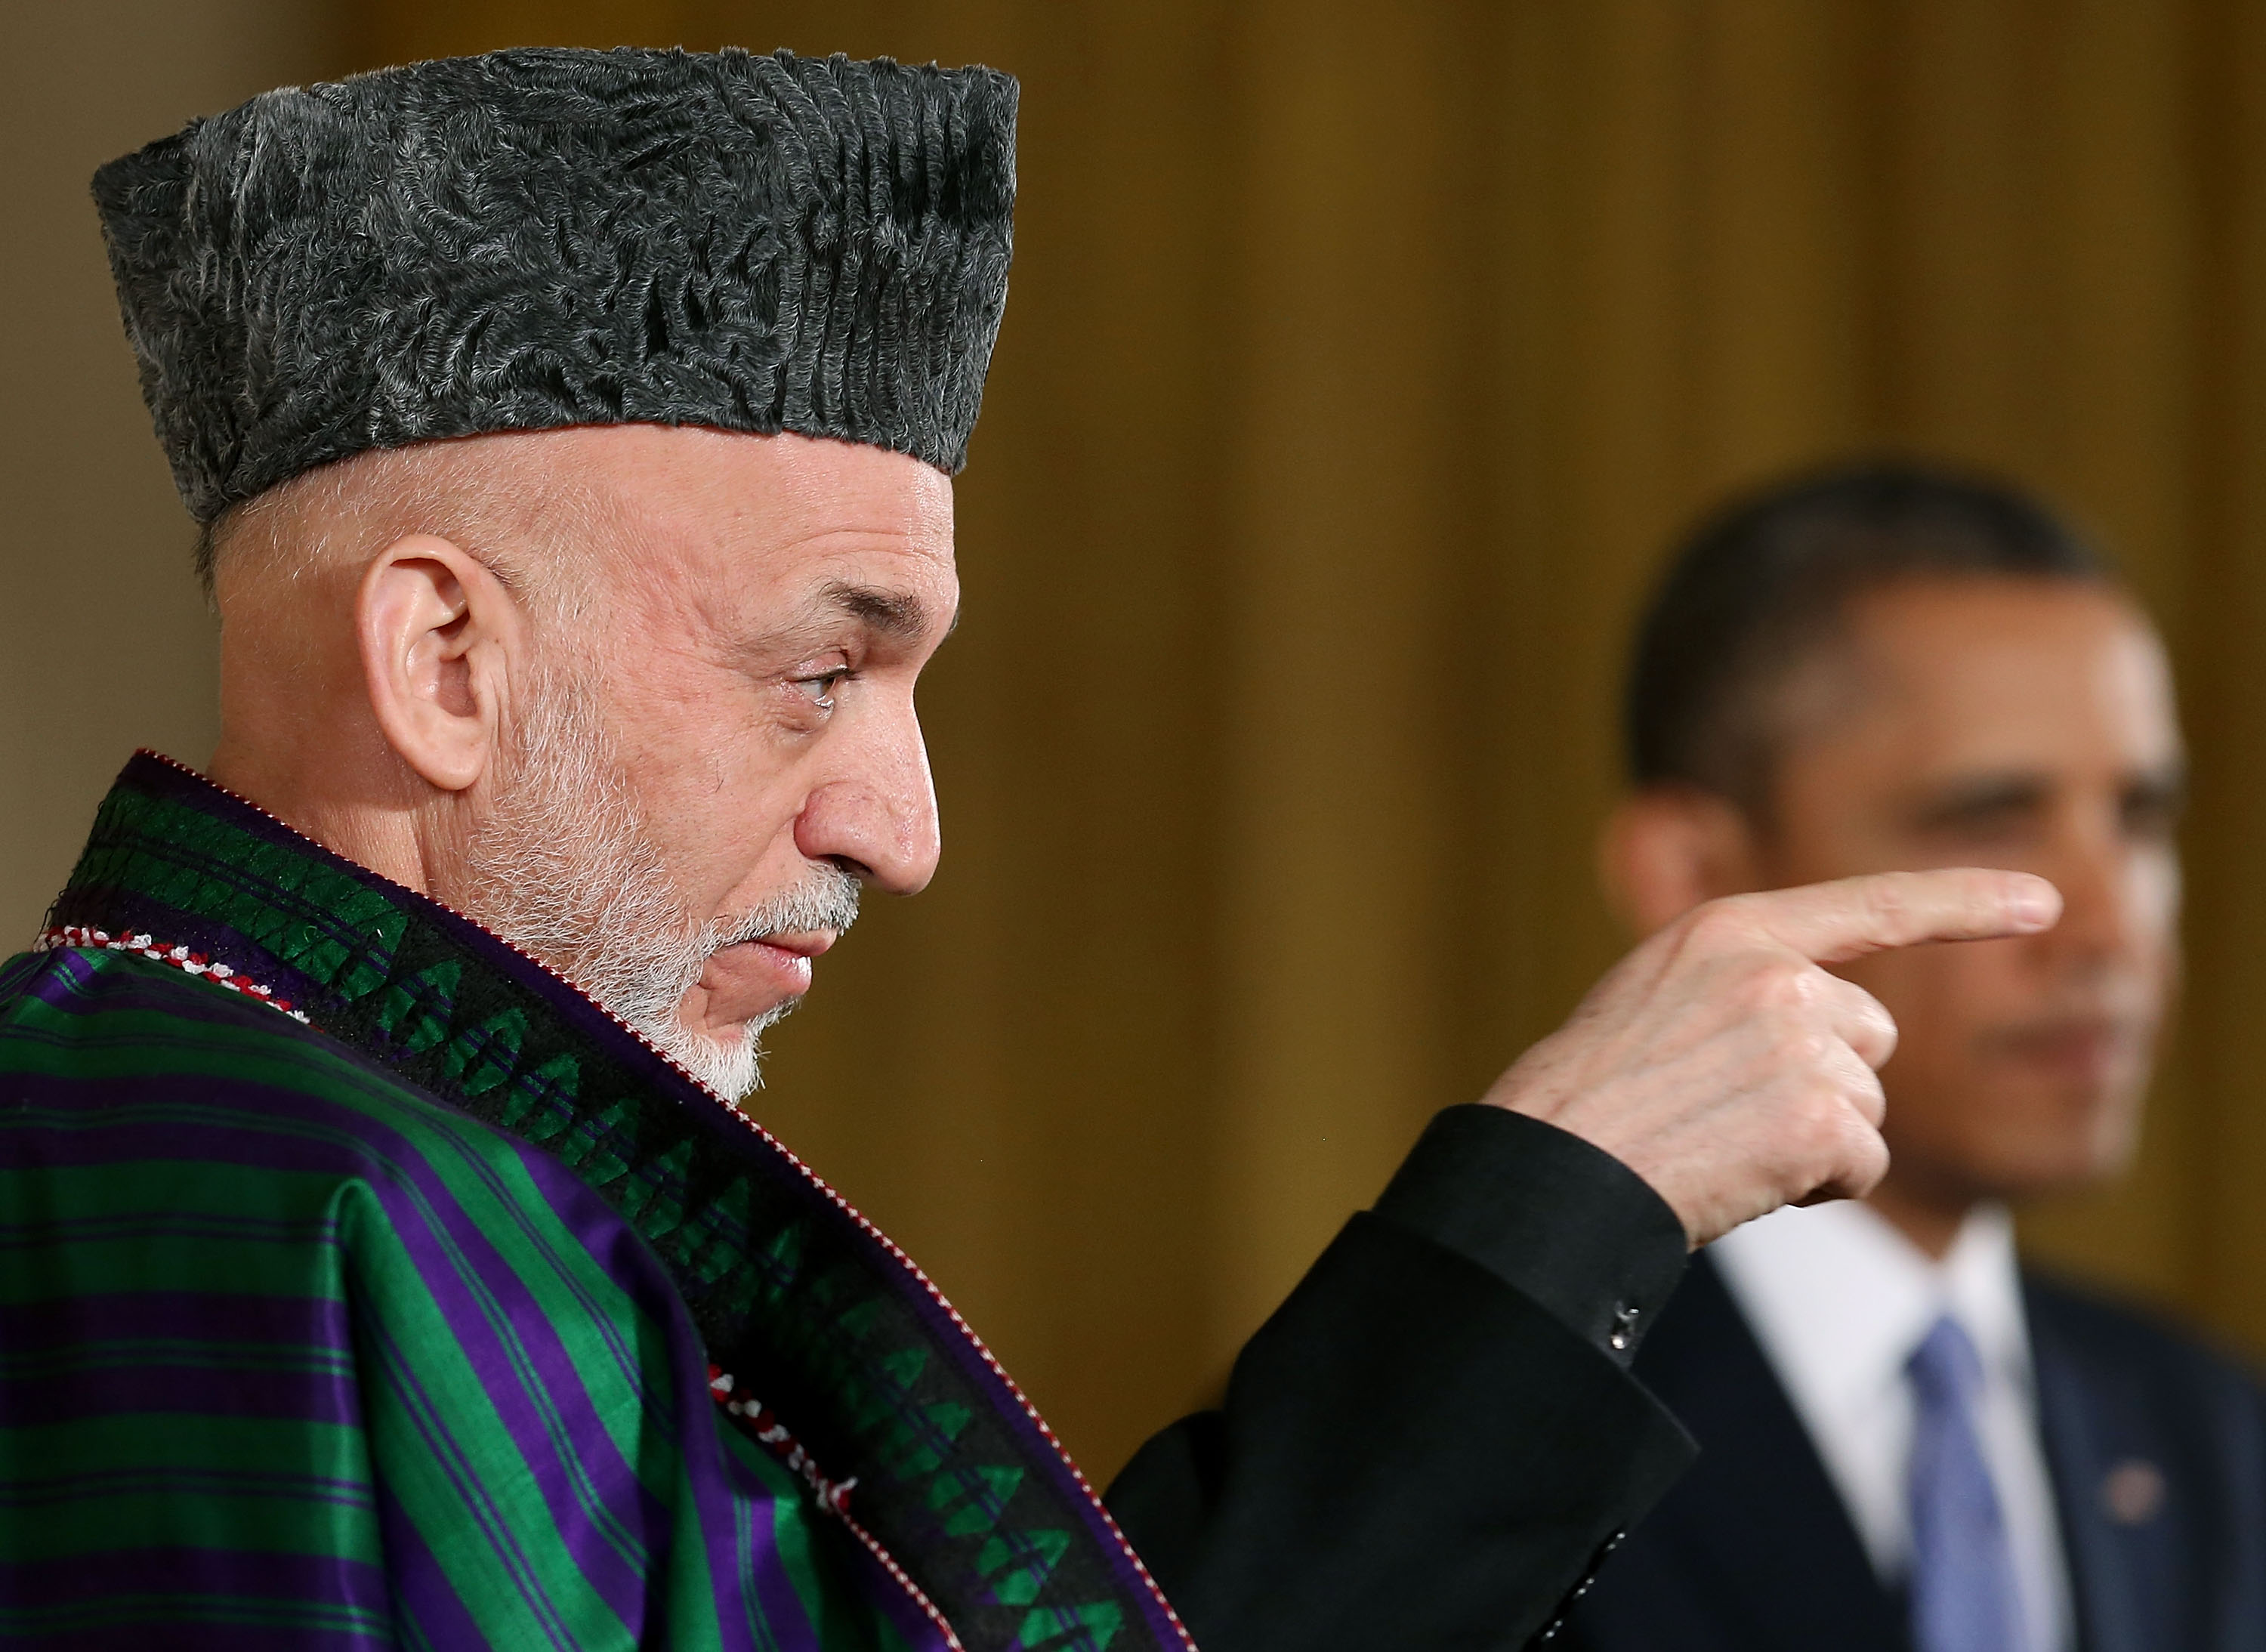 Afghan President Hamid Karzai and President Obama at the White House in 2013.